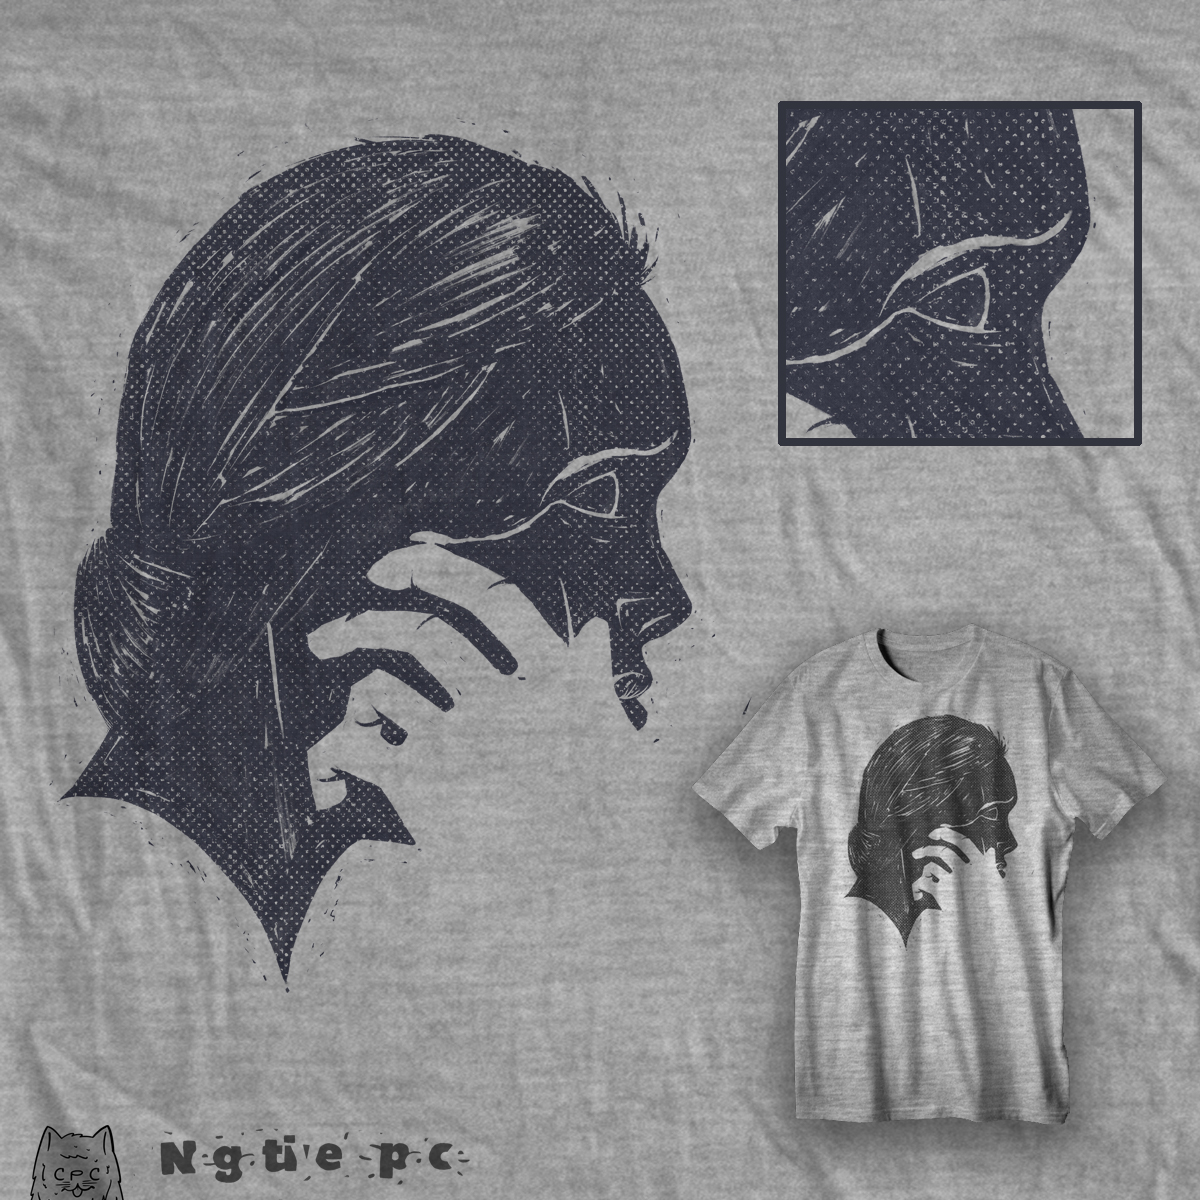 miss you, a cool t-shirt design